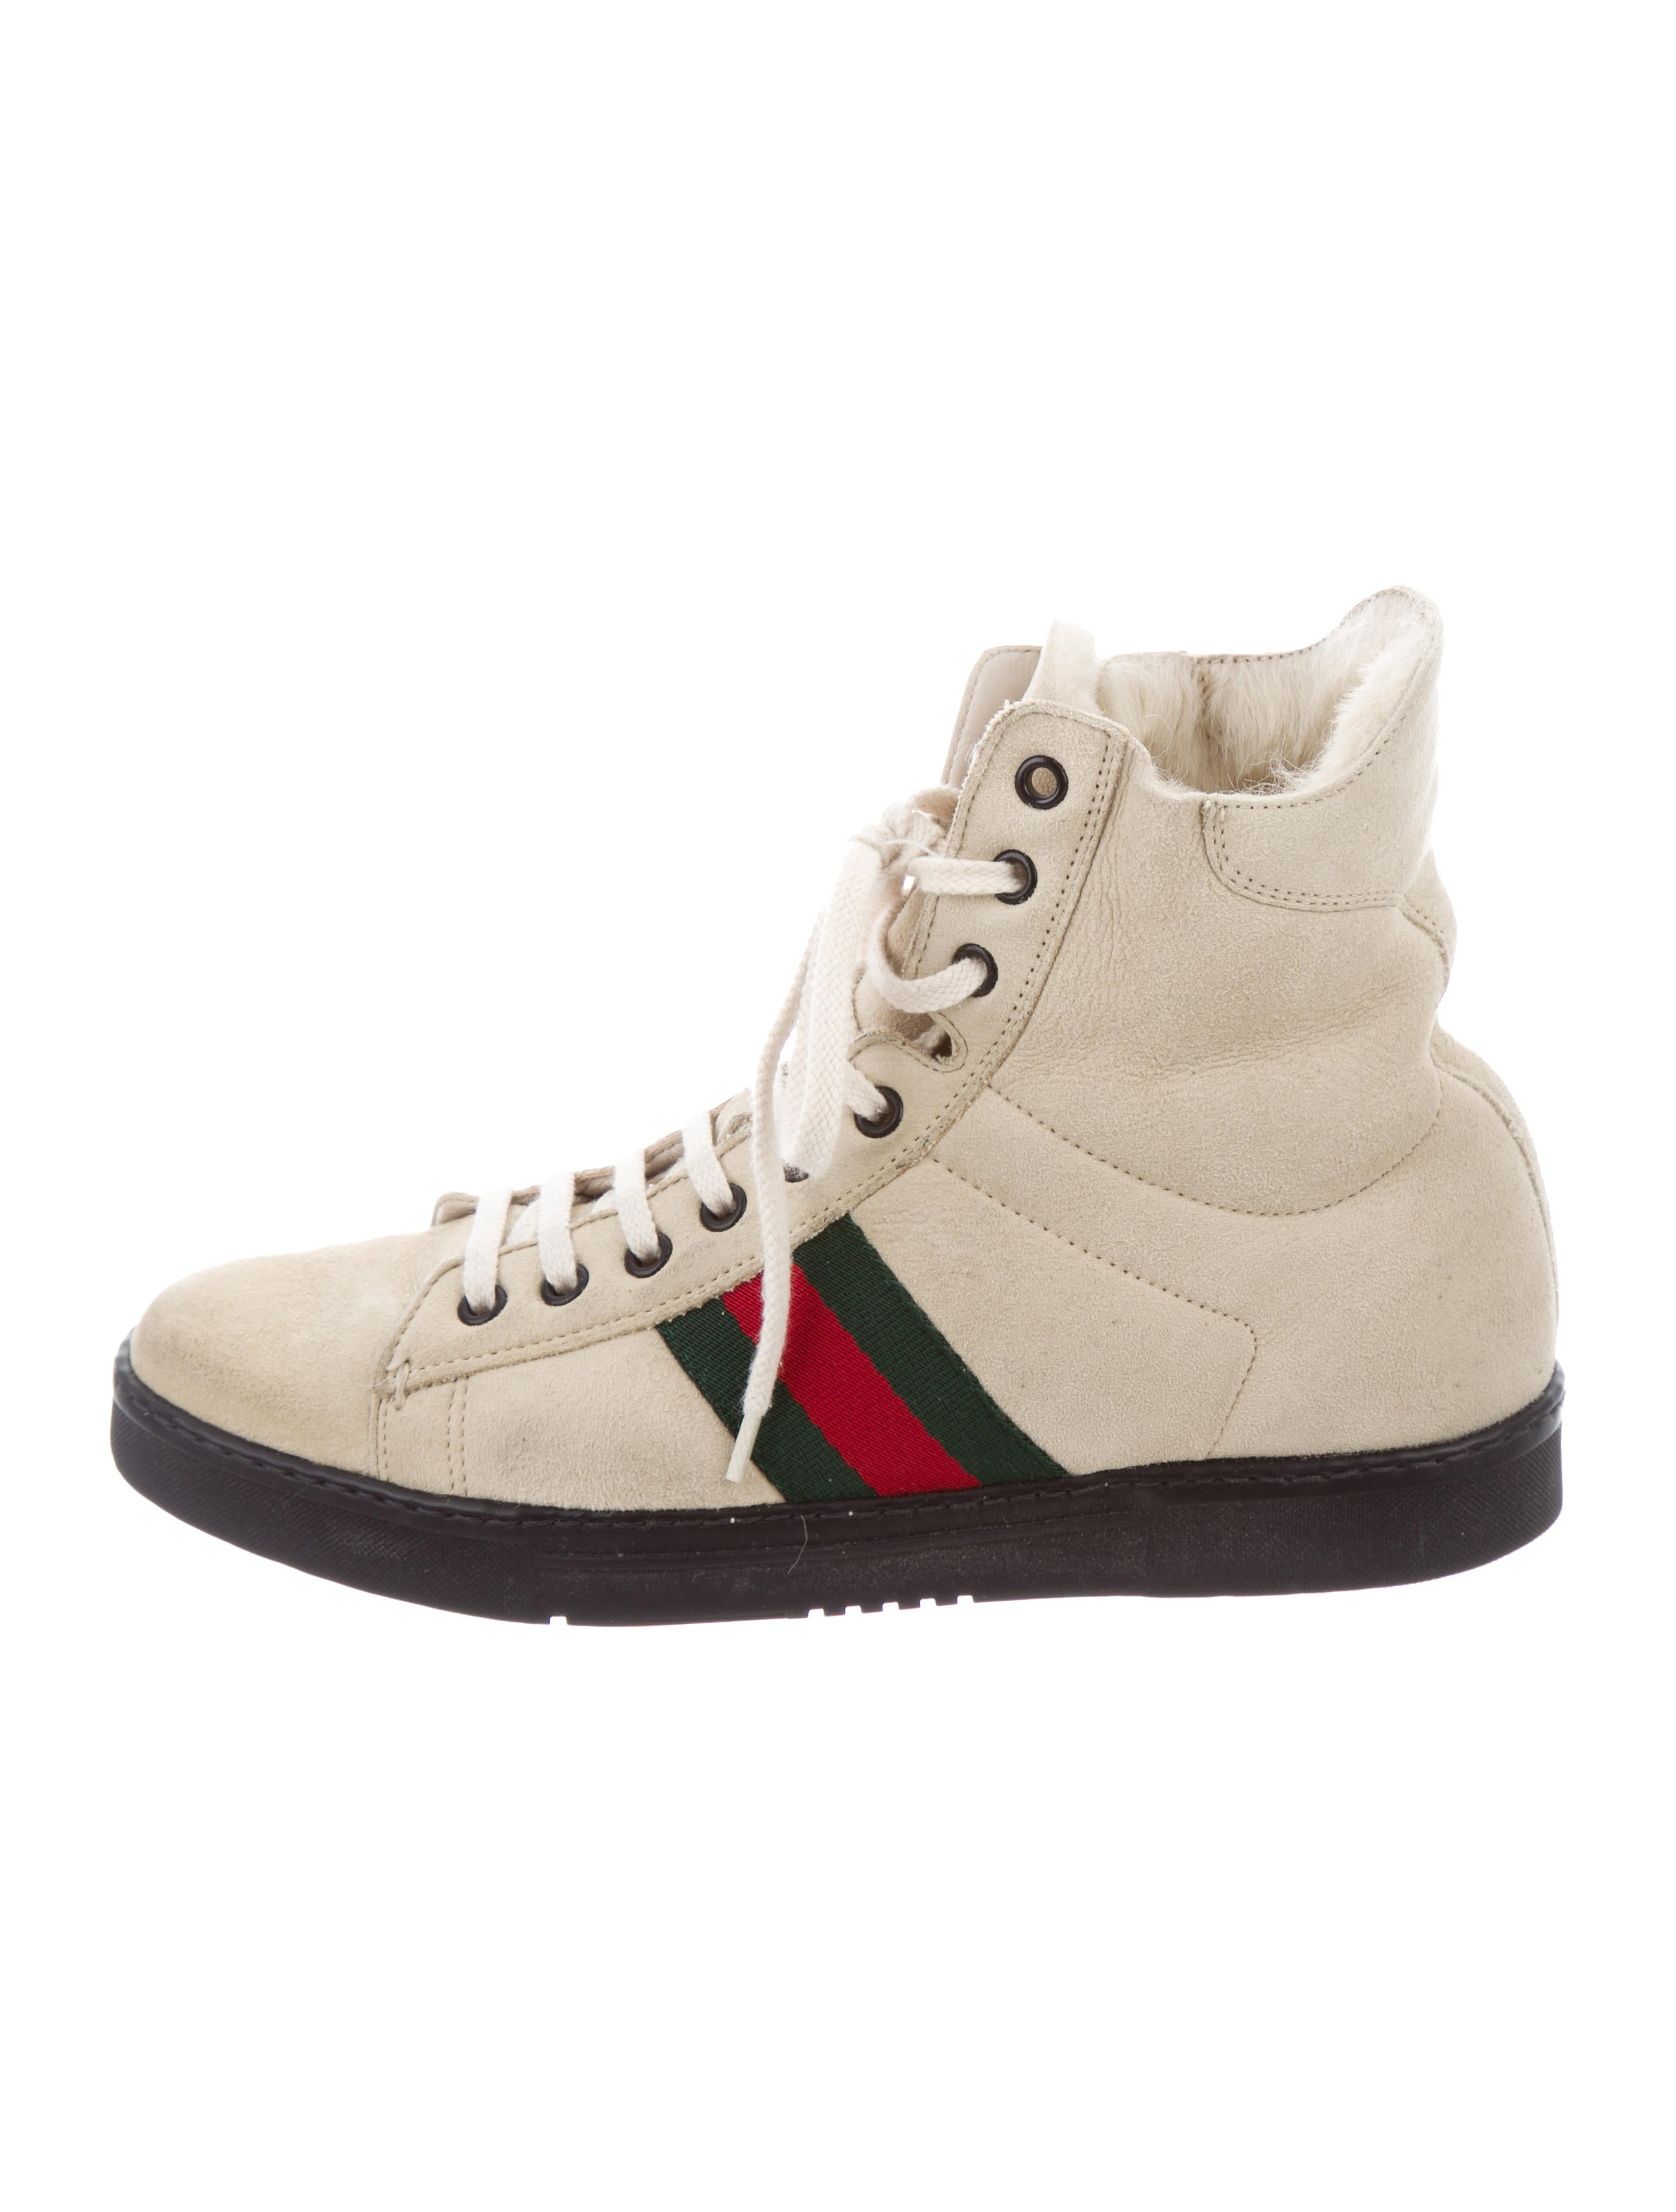 59fad9abf63 Gucci High Top Sneakers With Fur